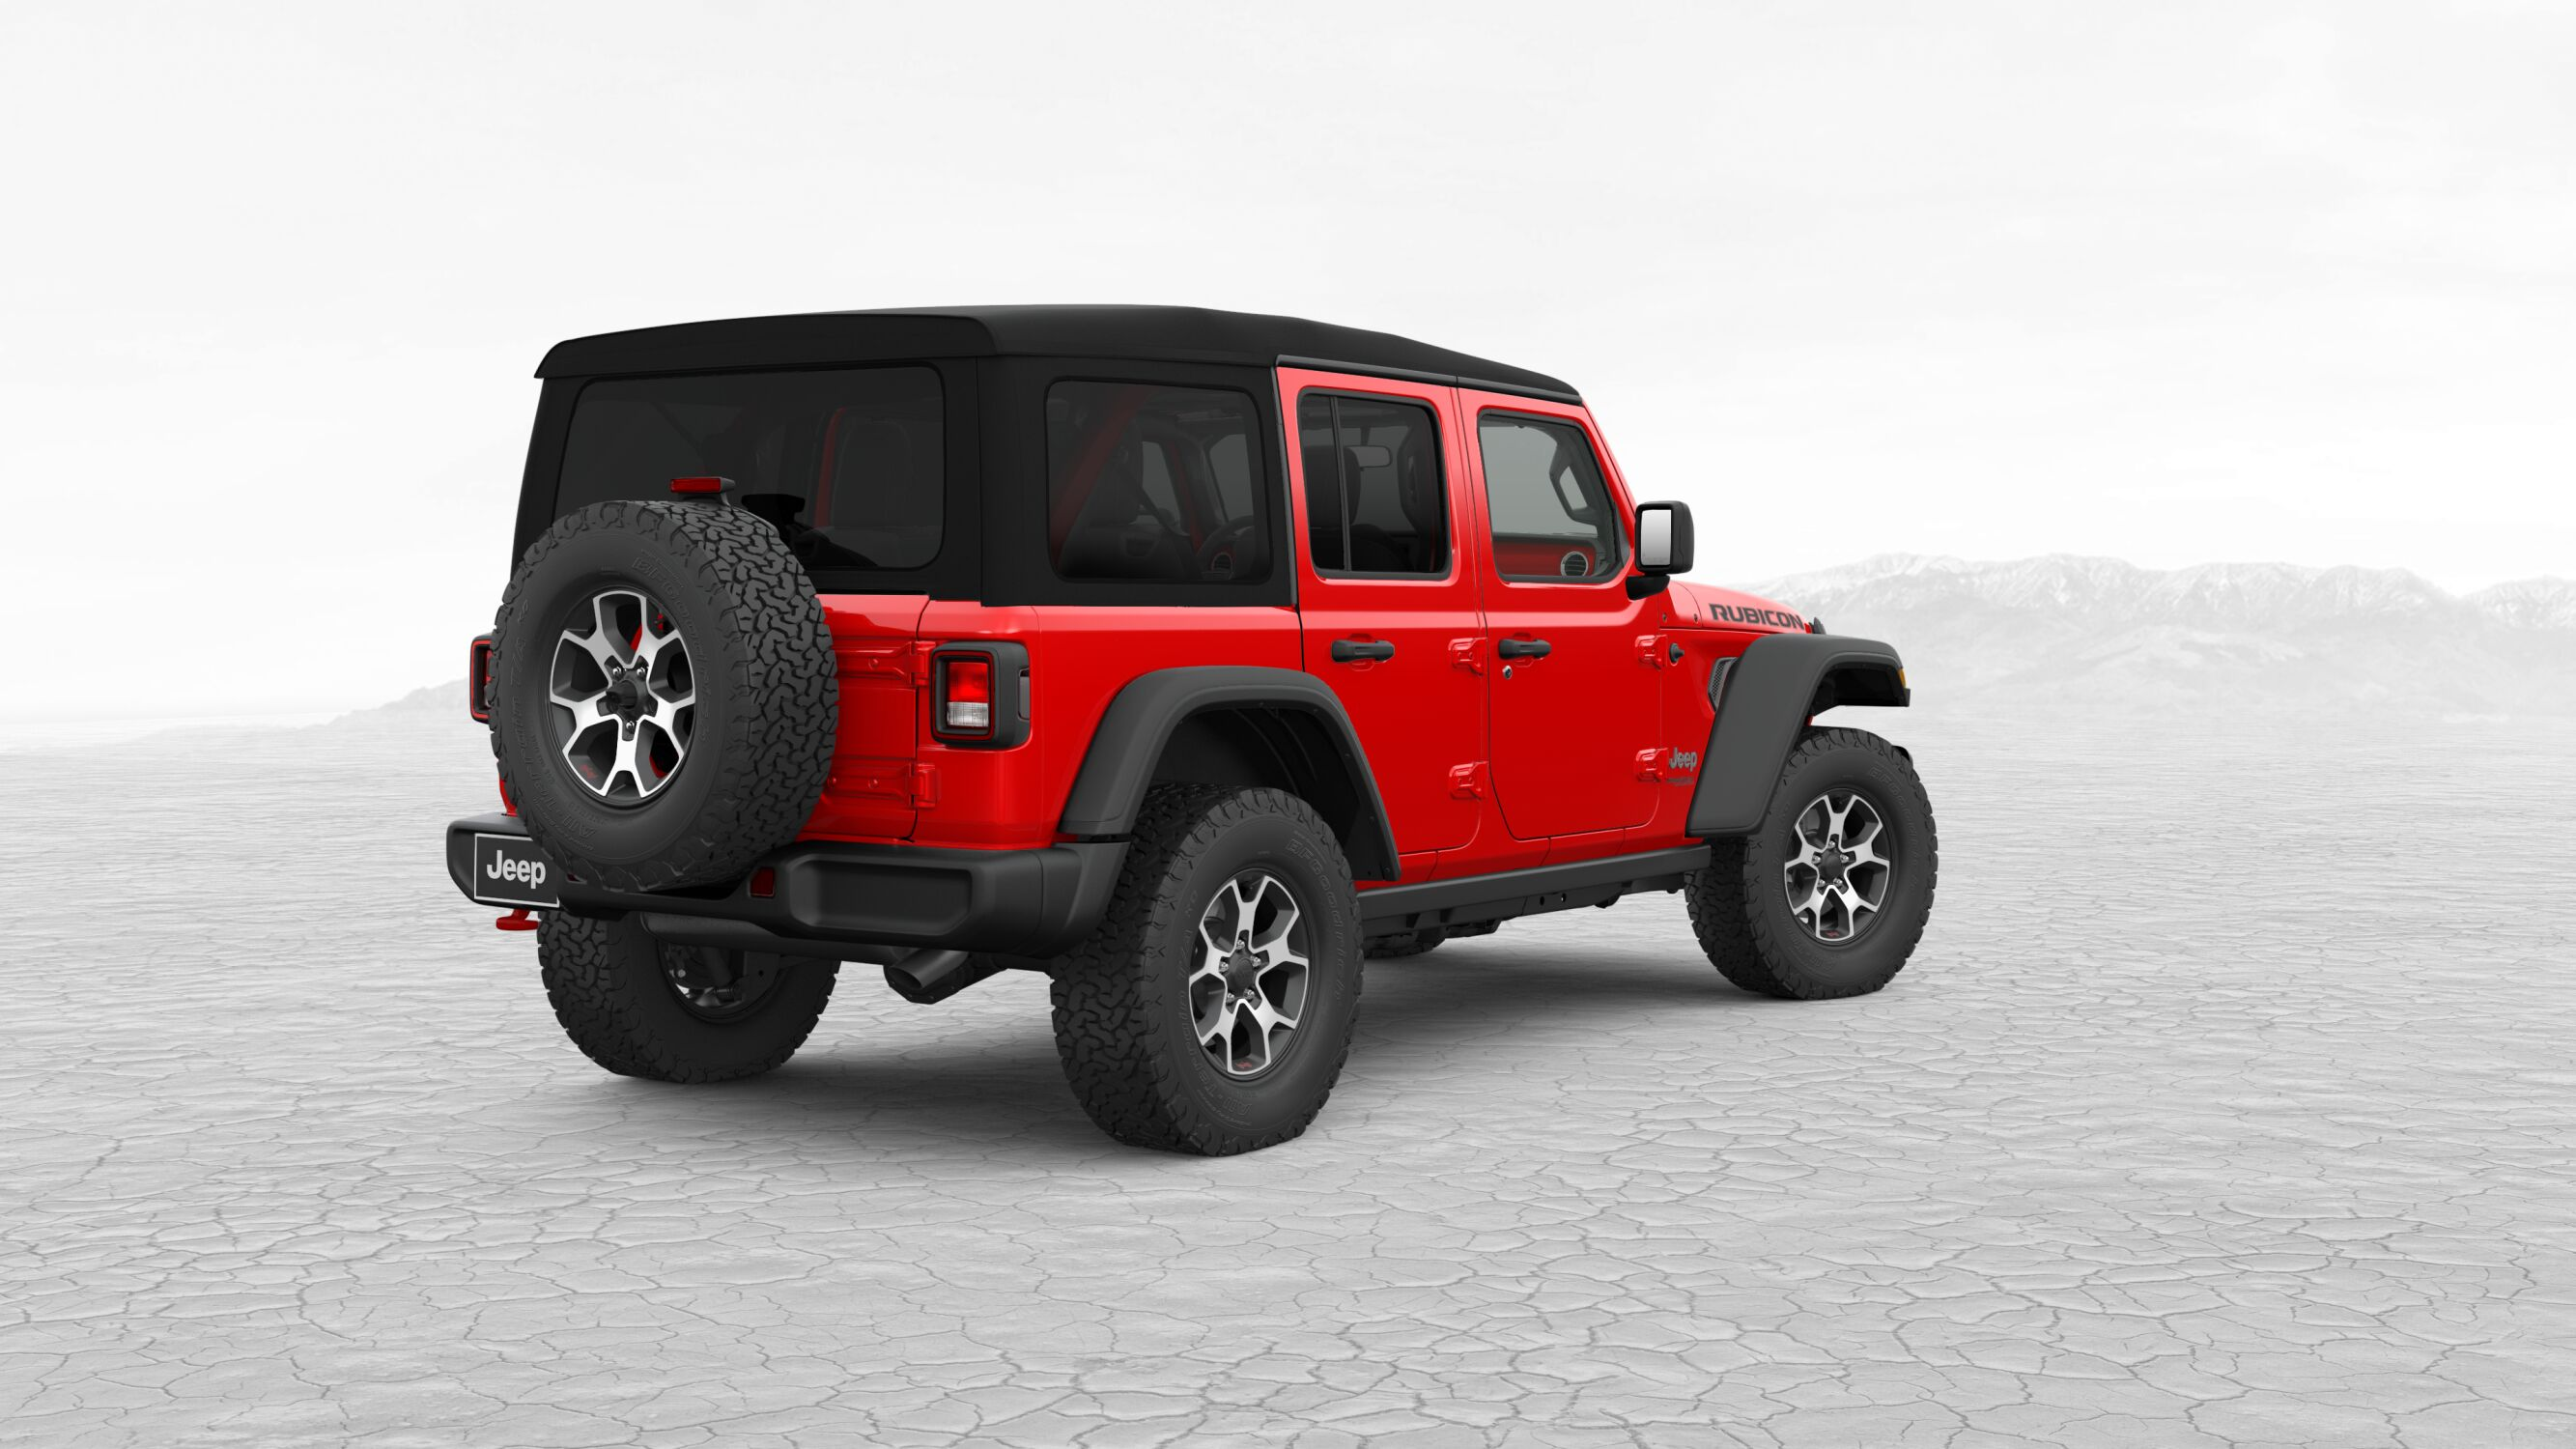 2018 Jeep Wrangler Jl Unlimited Rubicon Wilson Motors Corvallis Or Parts Book Red Exterior Rear